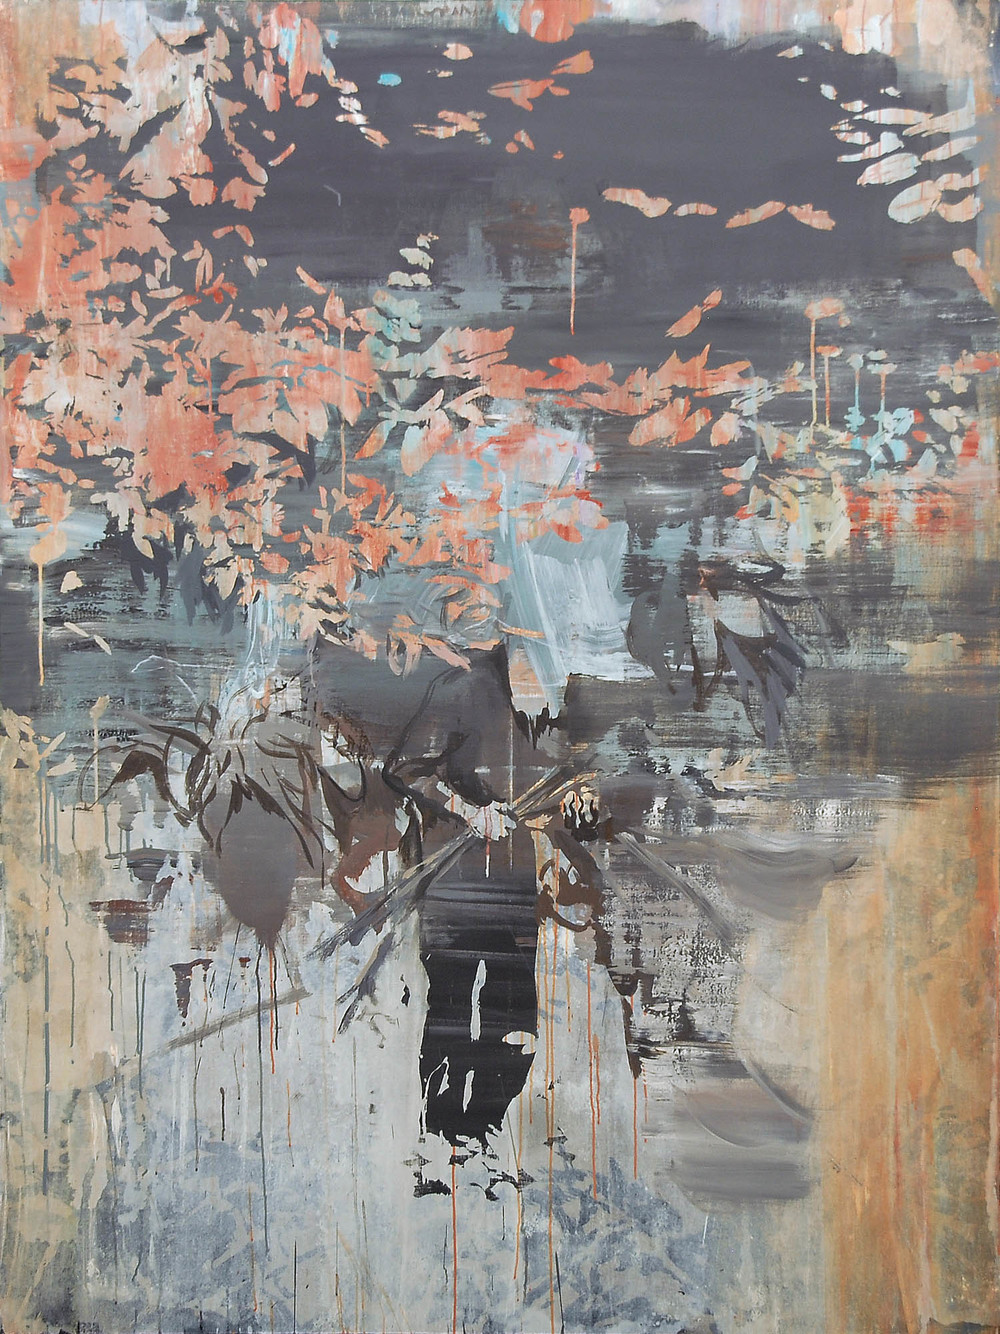 Lu Song 吕松, Coming Home, 2015, Oil on canvas 布面油画, 200 x 150 cm